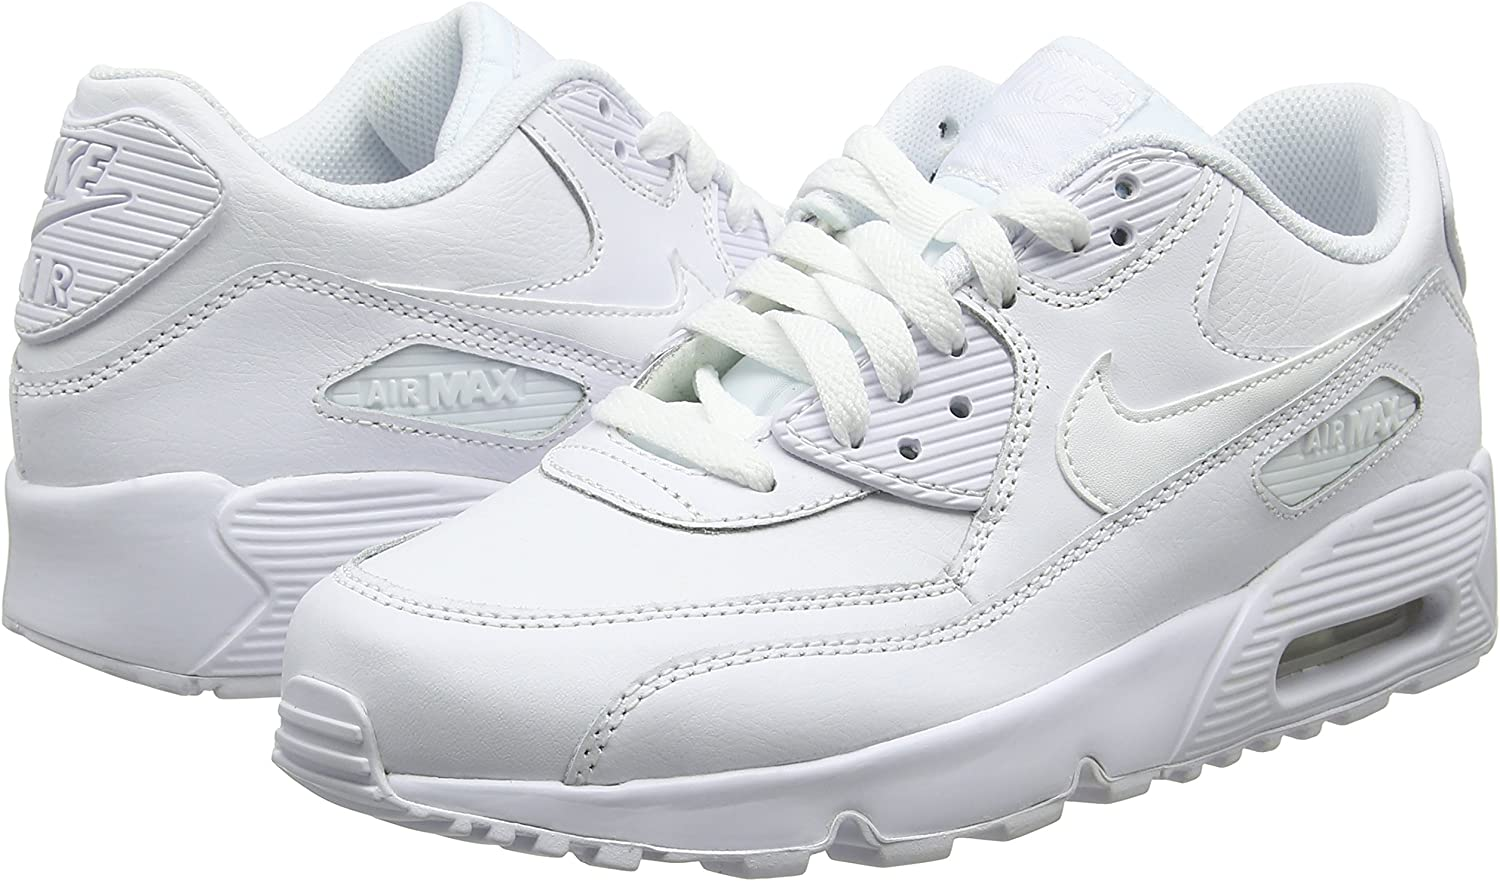 Nike Air Max 90 LTR GS Chaussures de Running Entrainement Homme